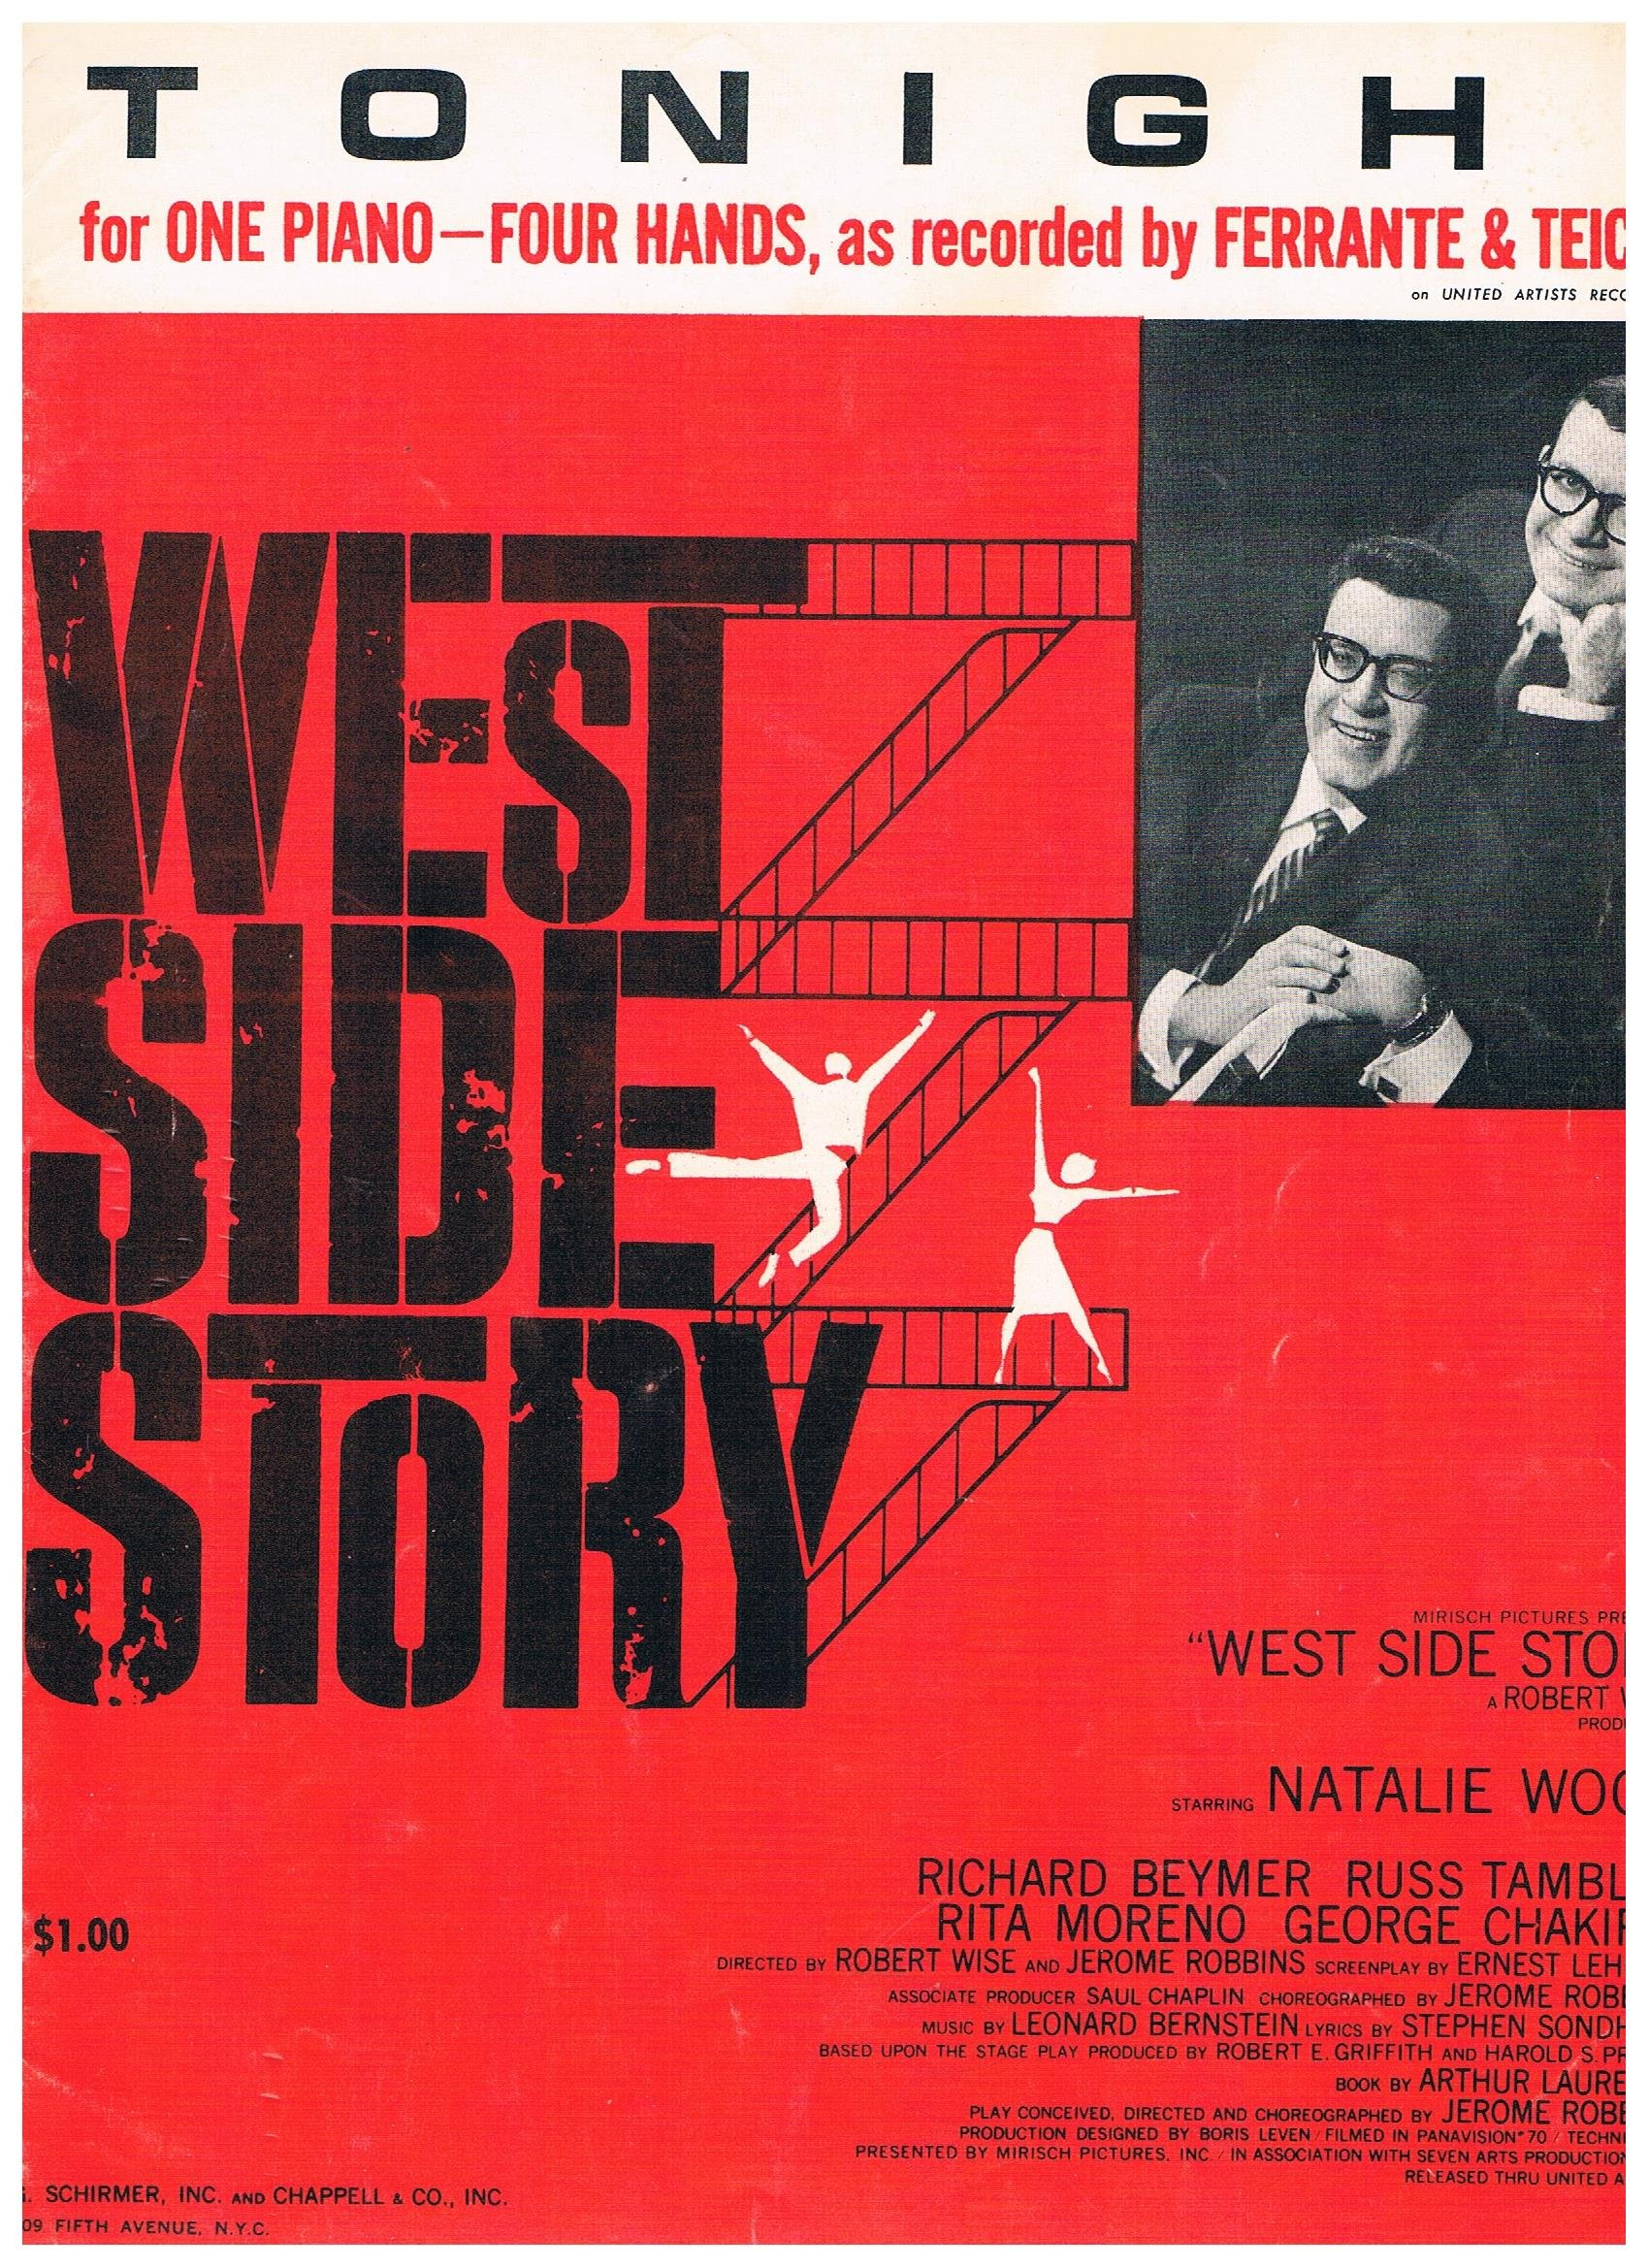 tonight from west side story as recorded by ferrante teicher sheet music one piano four hands arranged by ferrante teicher